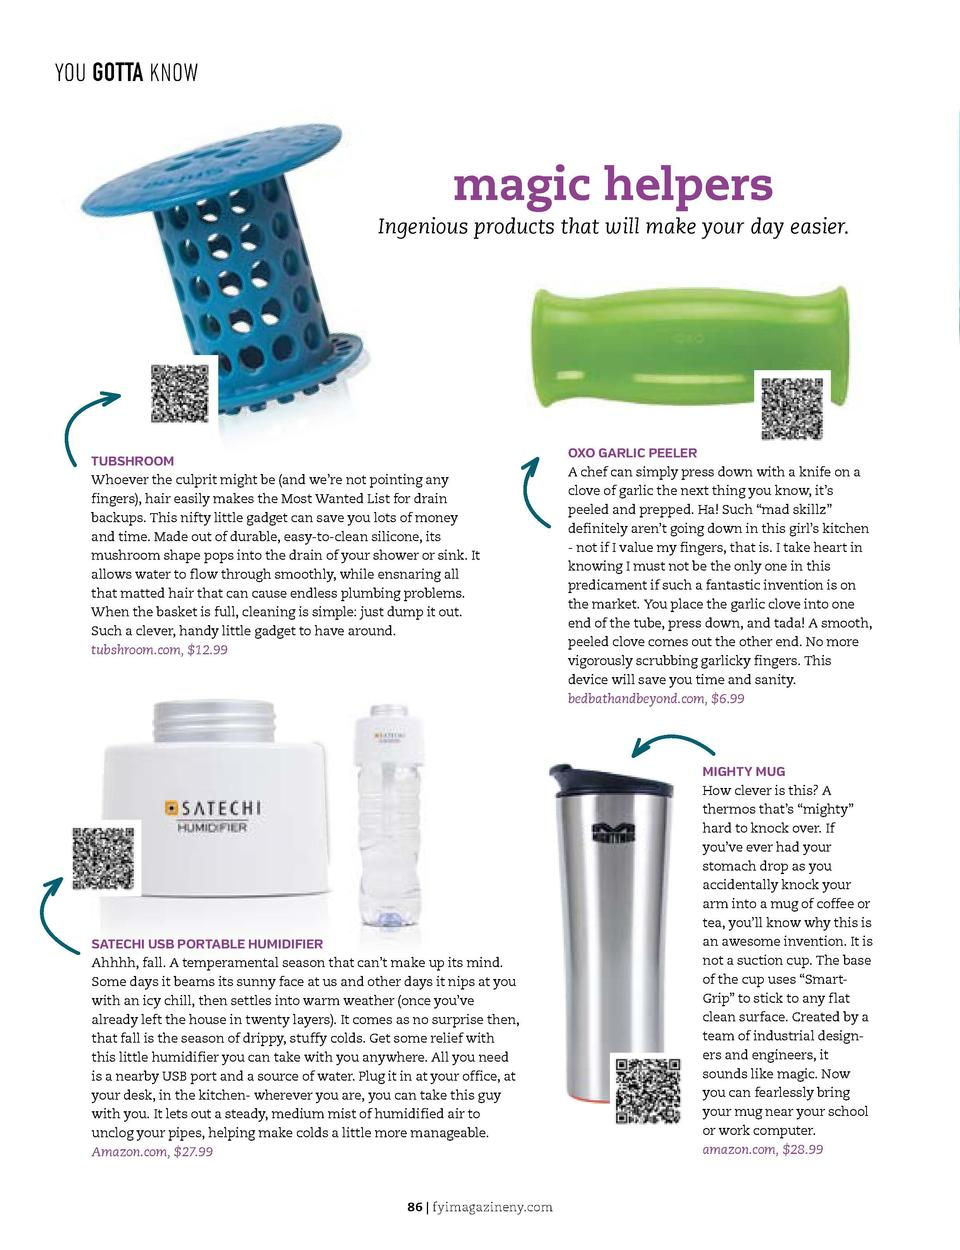 YOU GOTTA KNOW  YOU GOTTA KNOW  magic helpers  Ingenious products that will make your day easier.  TUBSHROOM Whoever the c...